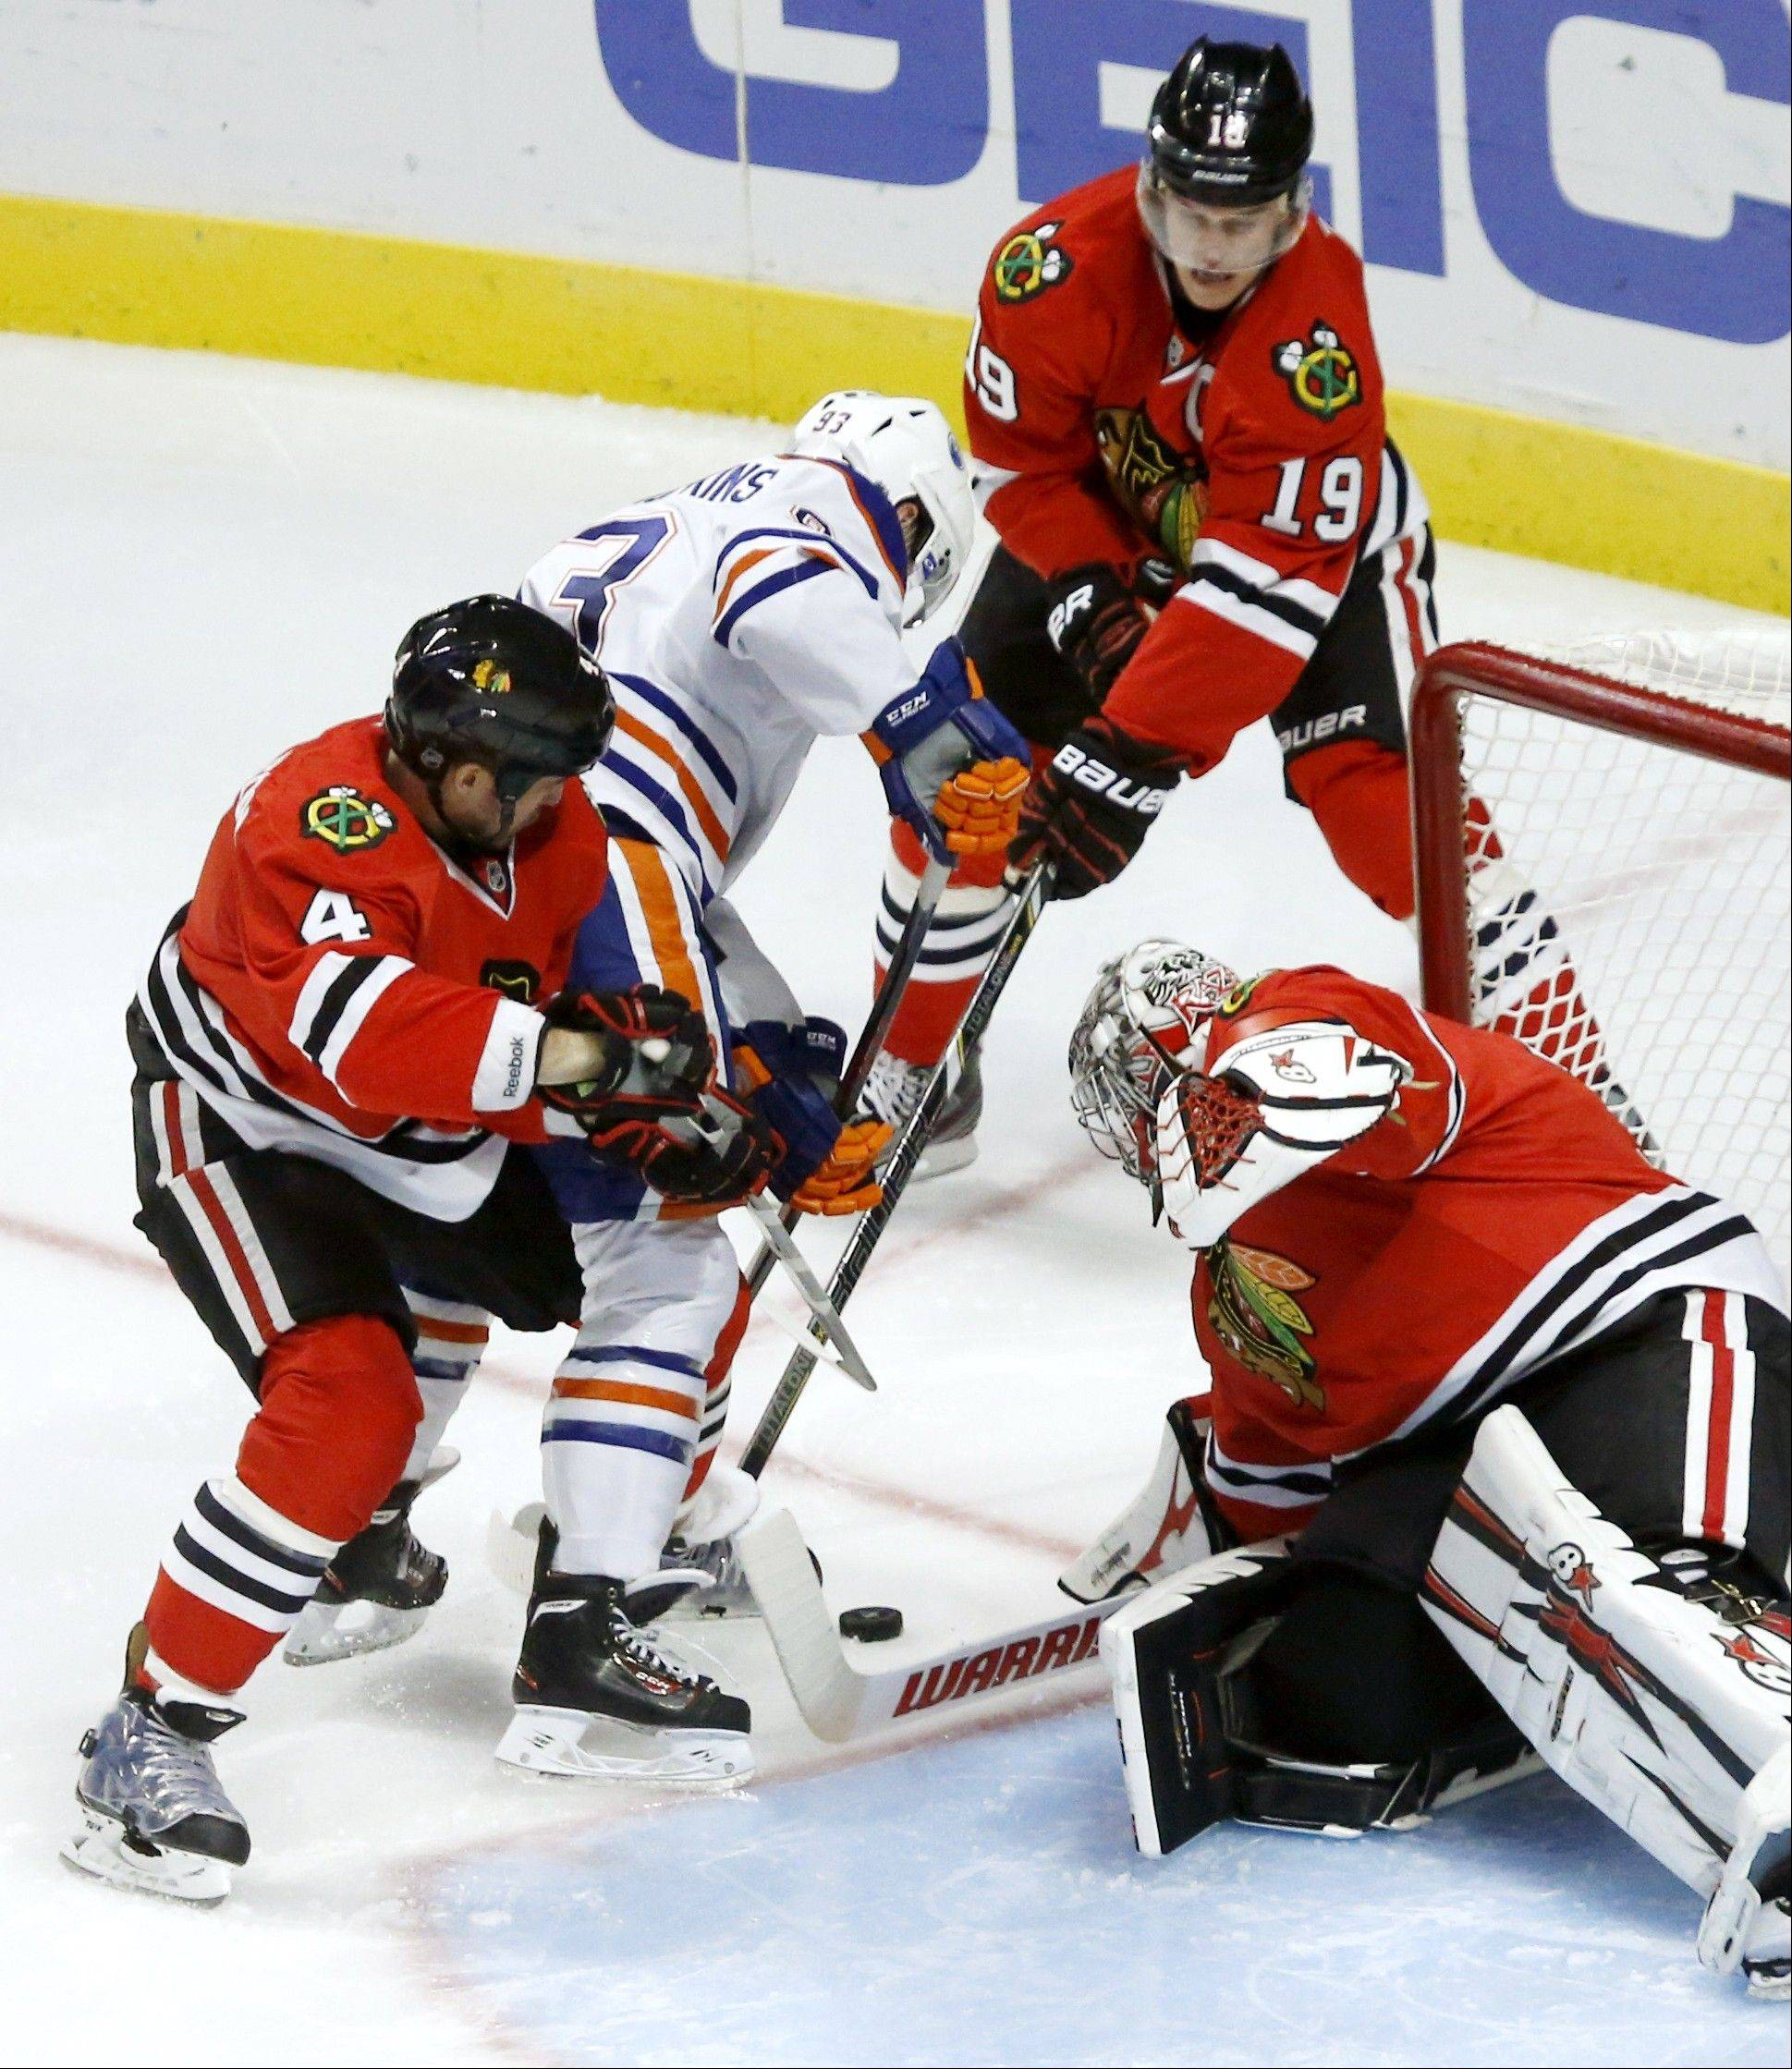 The Chicago Blackhawks' Niklas Hjalmarsson and Jonathan Toews keep Edmonton Oilers center Ryan Nugent-Hopkins from getting a shot on goalie Ray Emery during the third period.